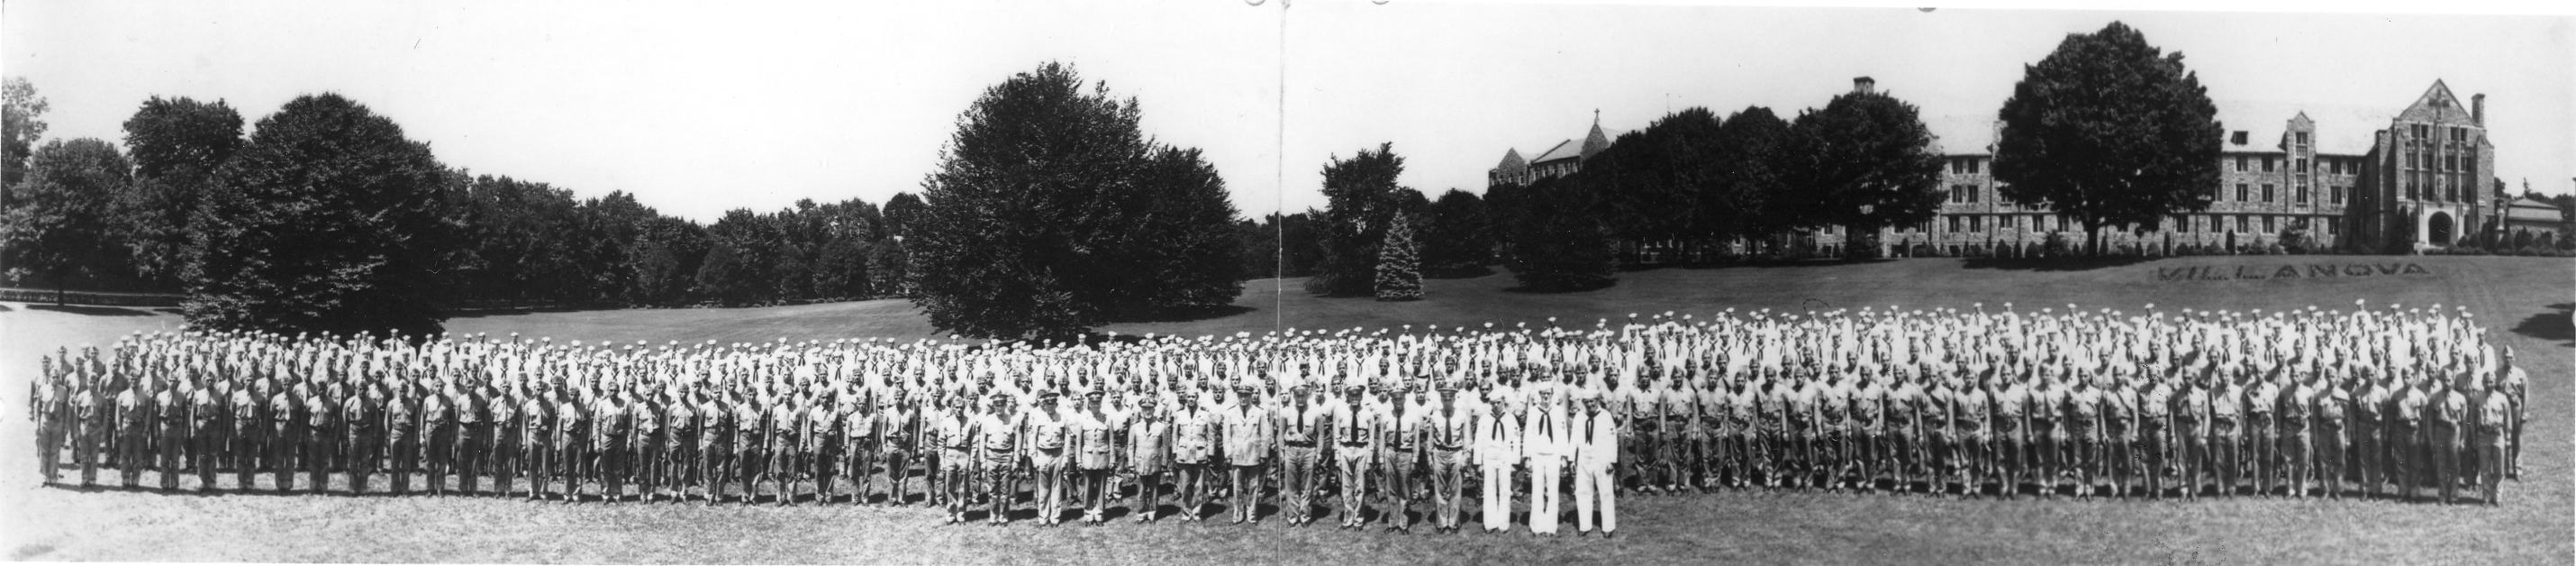 Navy V-12 students